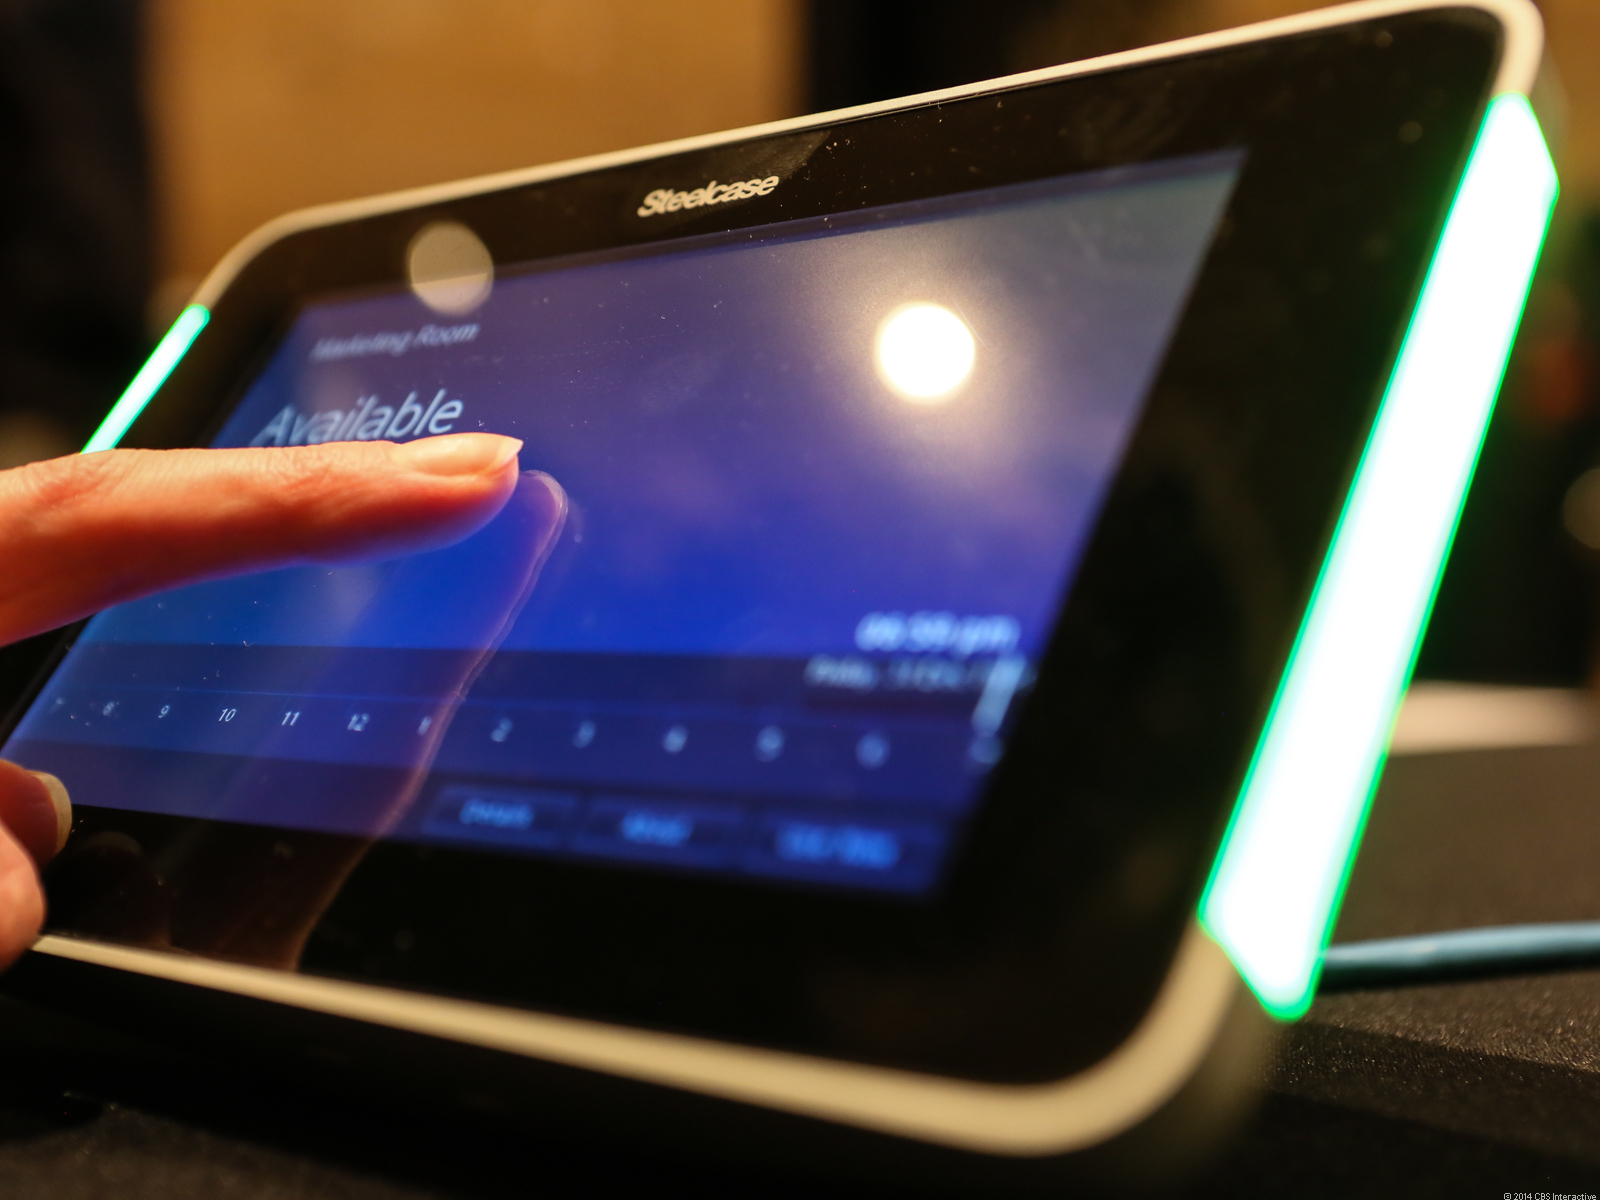 Antimicrobial Corning Gorilla Glass on a device